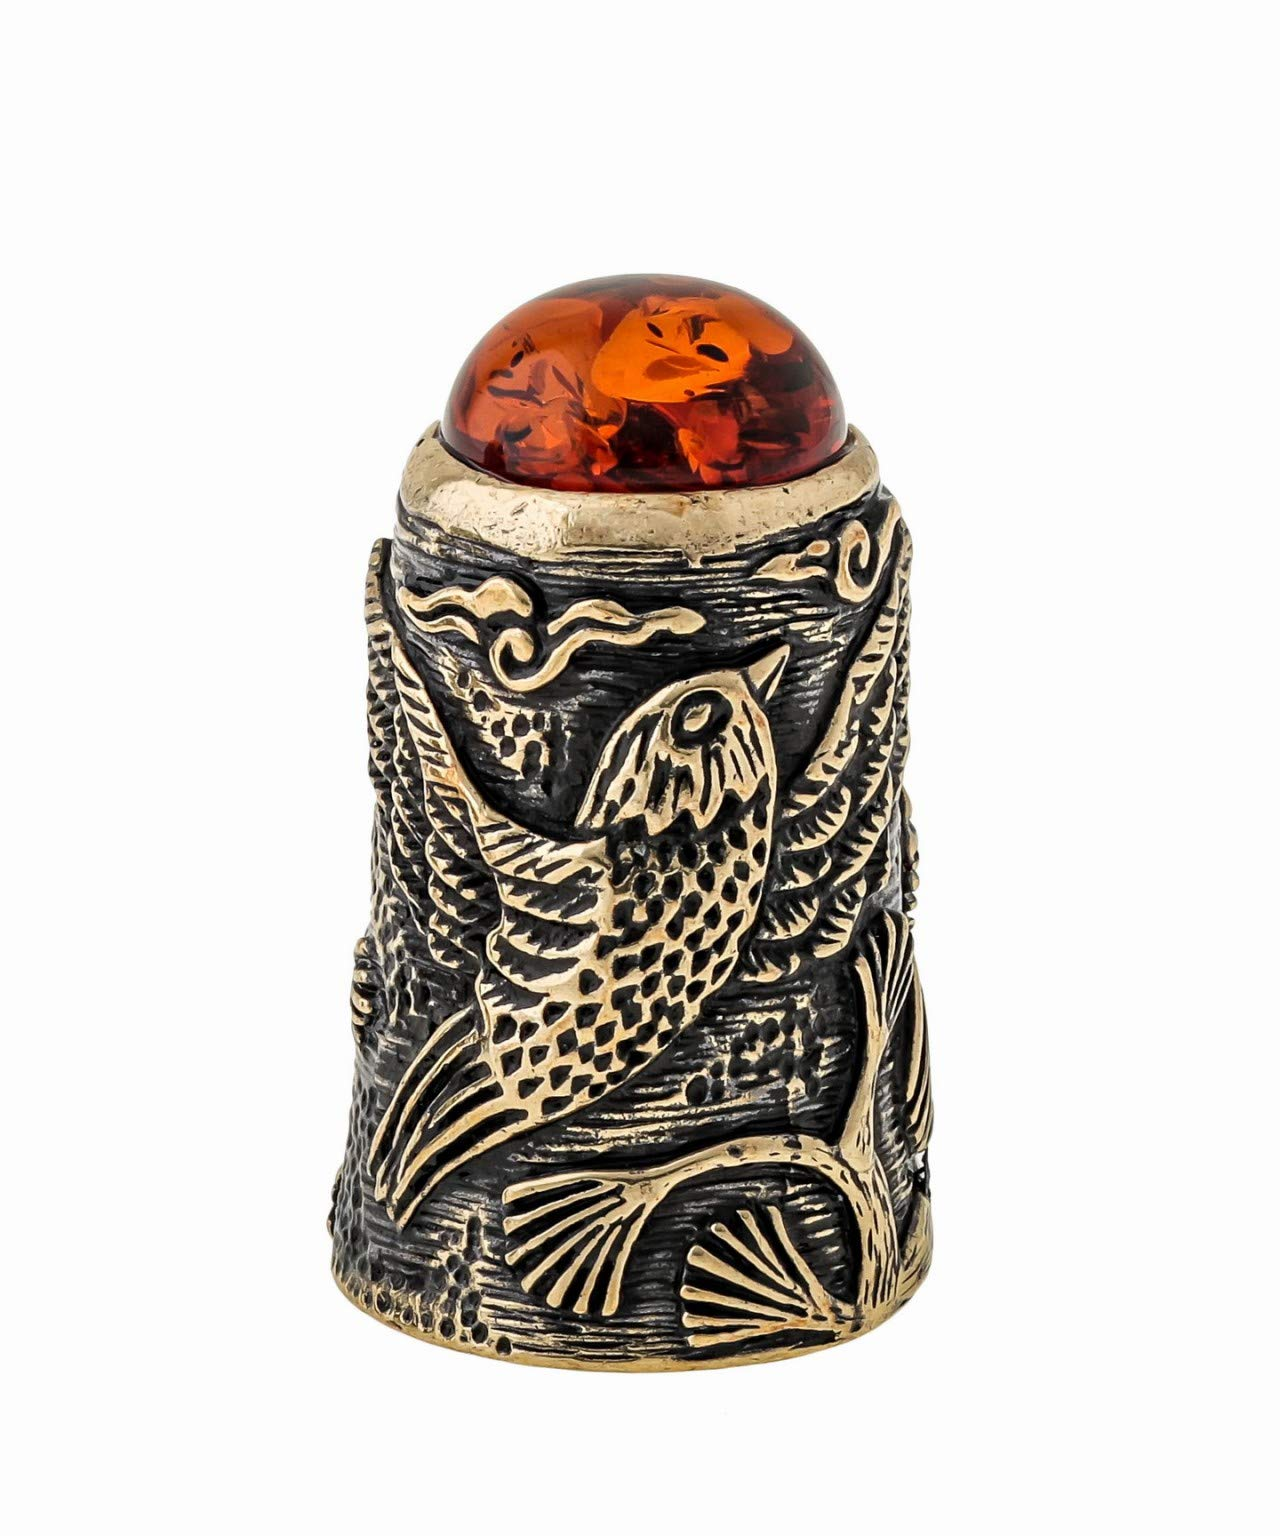 Collectible Thimble (Bird Waxwings) Decorative Amber and Brass Souvenir Thimbles. Vintage Designs from Kaliningrad, Russia. Packed in a Beautiful Siberian Birch Bark Gift Box (Random Selection) by Brass and Amber Art